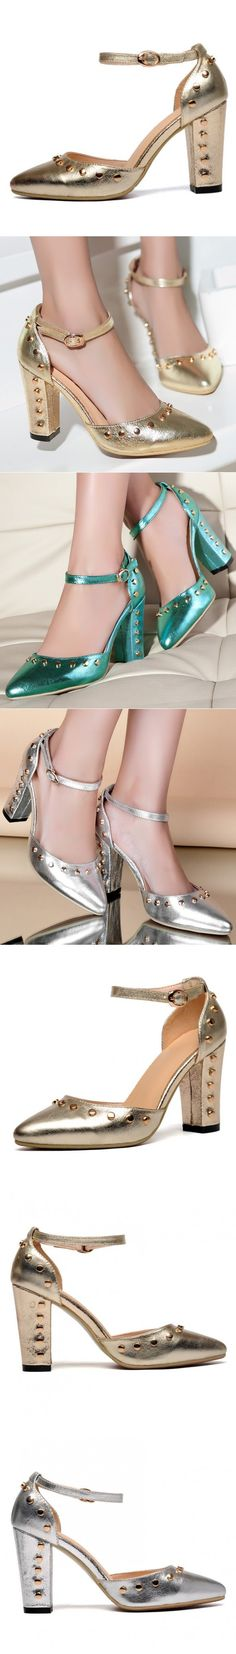 """Glowing Blue Promenade Ankle Booties Evening Shoe Tap Shoes Closed Thick High Heel """"Huge Black Colored Heels, Big Hindfoot"""" Interview Strap Heels Close Toed Cute Antique Womans Neon Ankle Booties Slip Resistant Kids Tap Shoes Spikes Crystal Heels Bling Matte Platforms Bohemian Grace."""